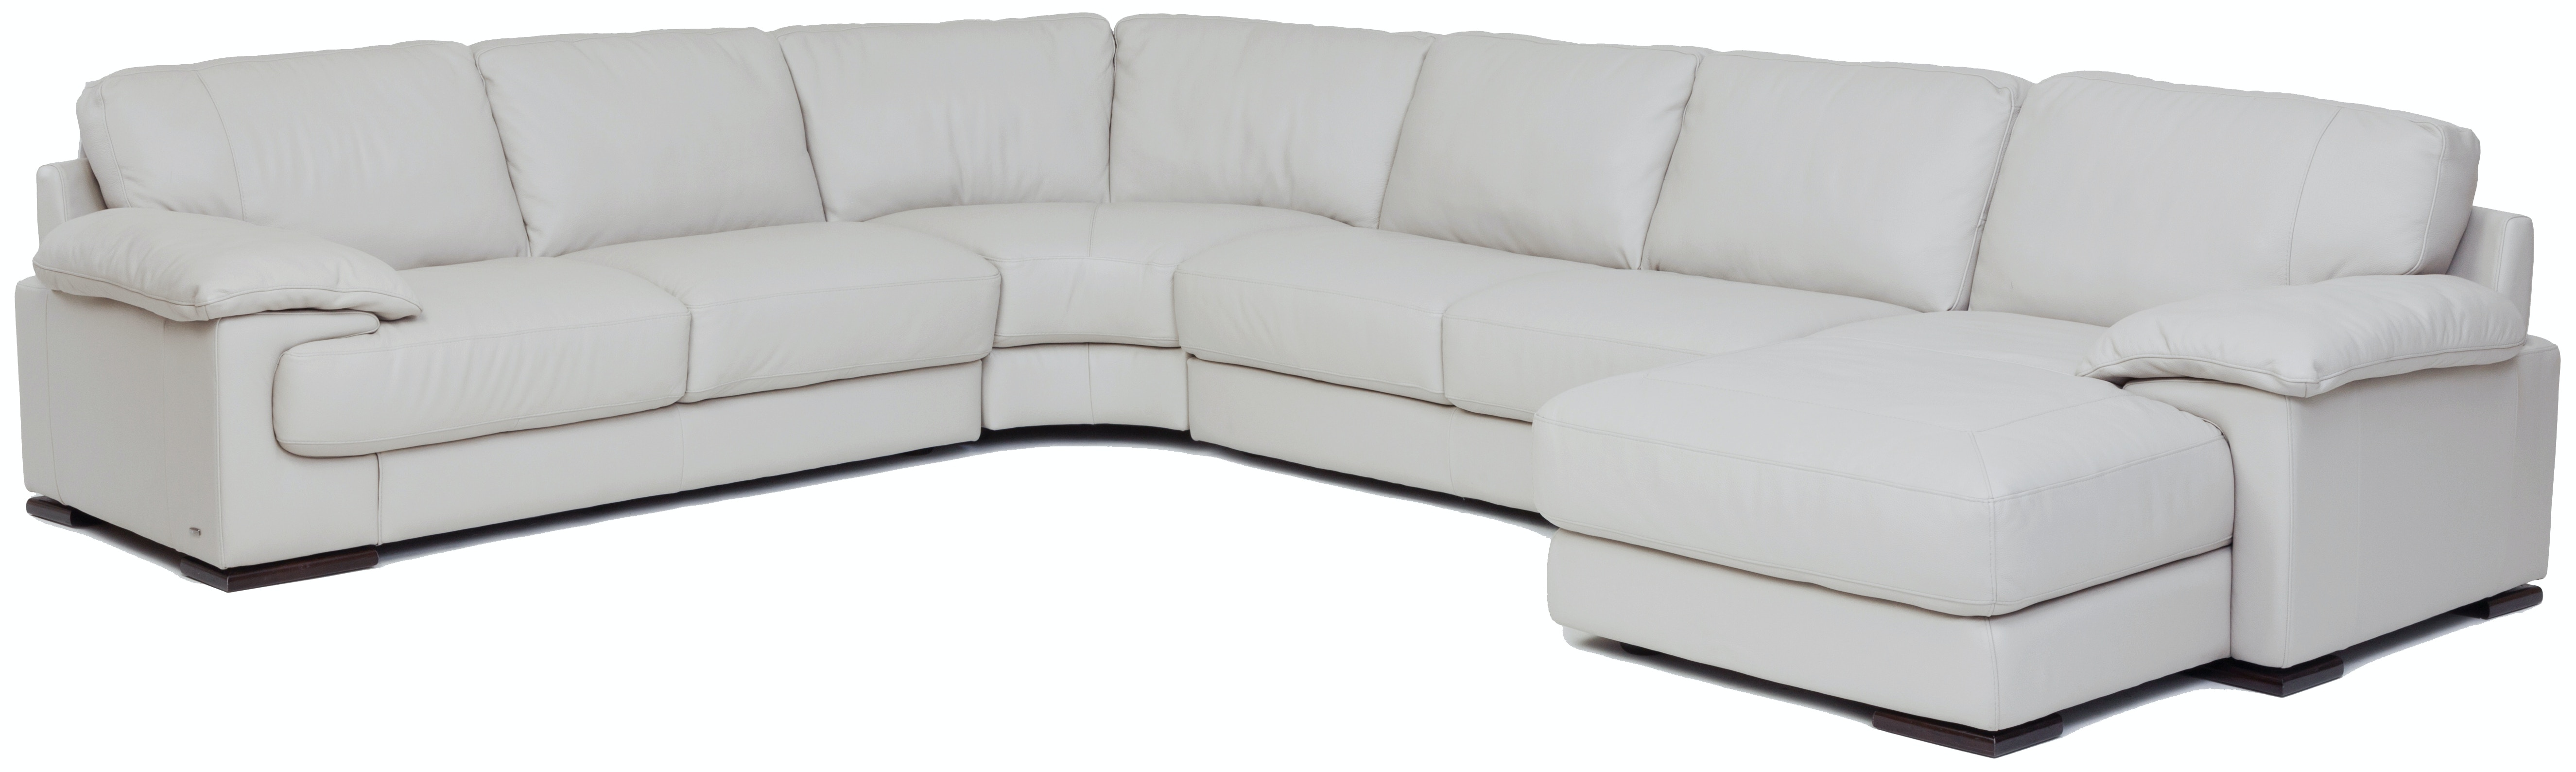 Denver 4 Piece Leather Chaise Sectional (RAF)  SMOKE GP:L116